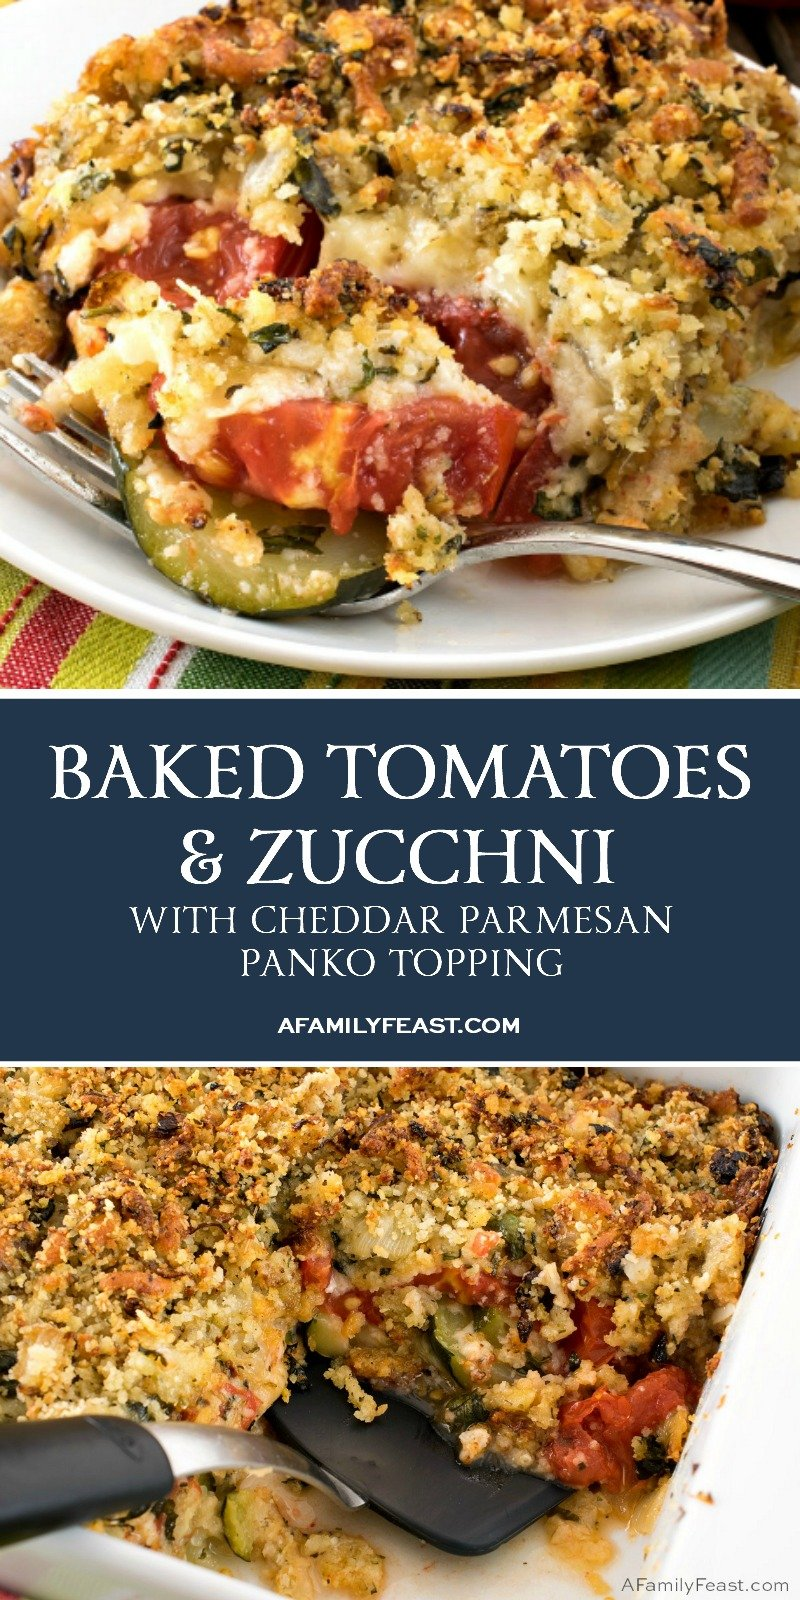 Baked Tomatoes and Zucchini with Cheesy Panko Topping